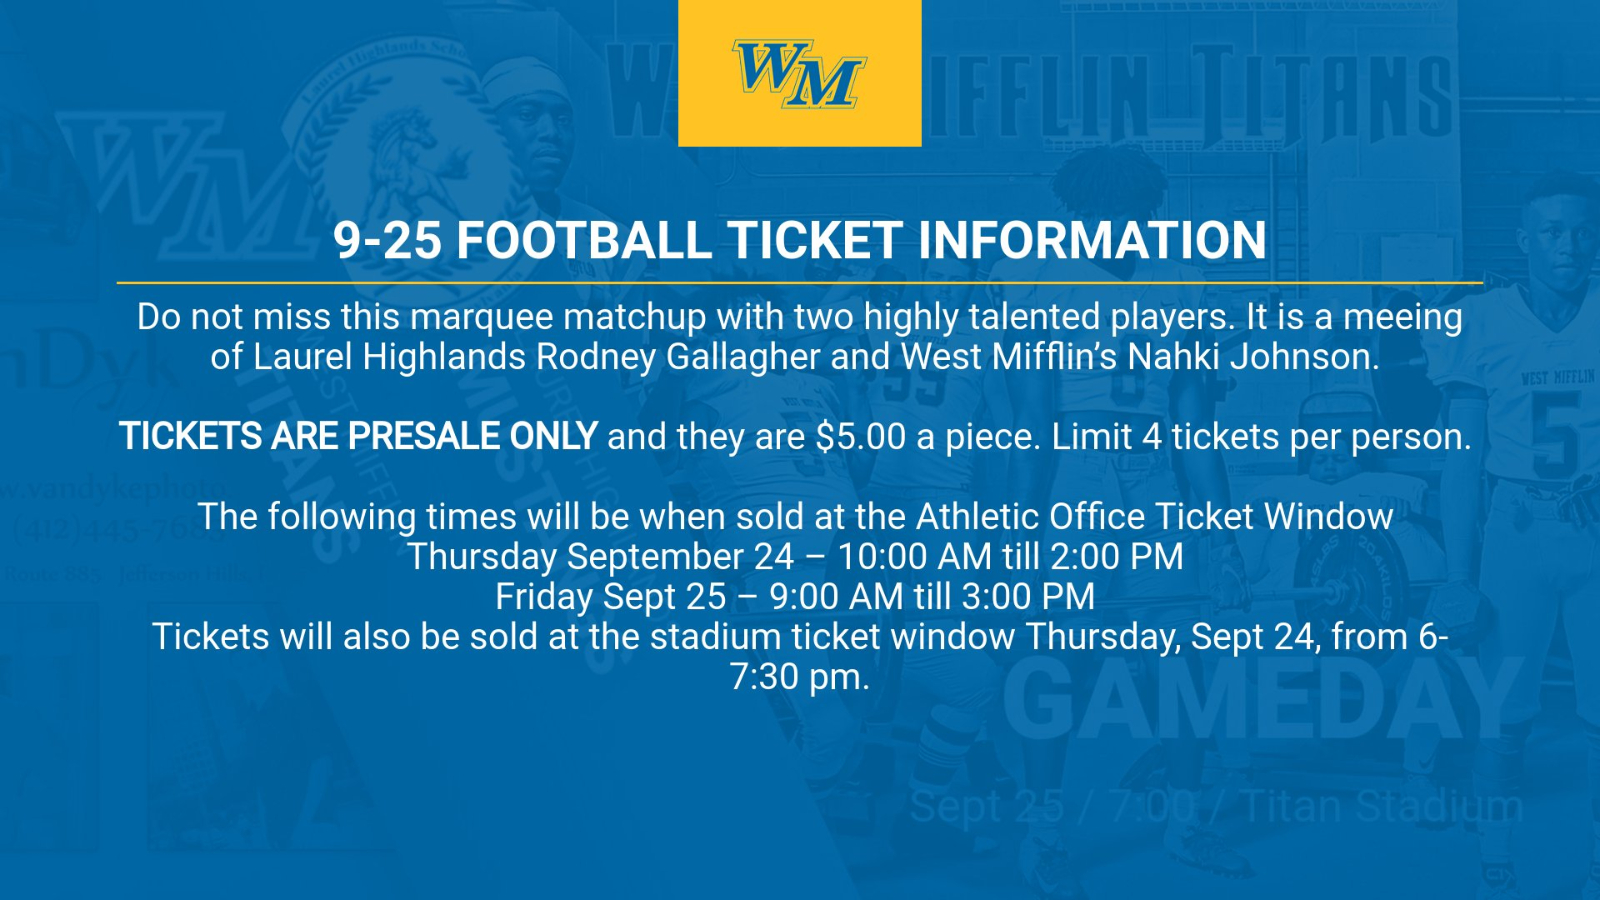 TICKET INFORMATION FOR 9-25 FOOTBALL GAME